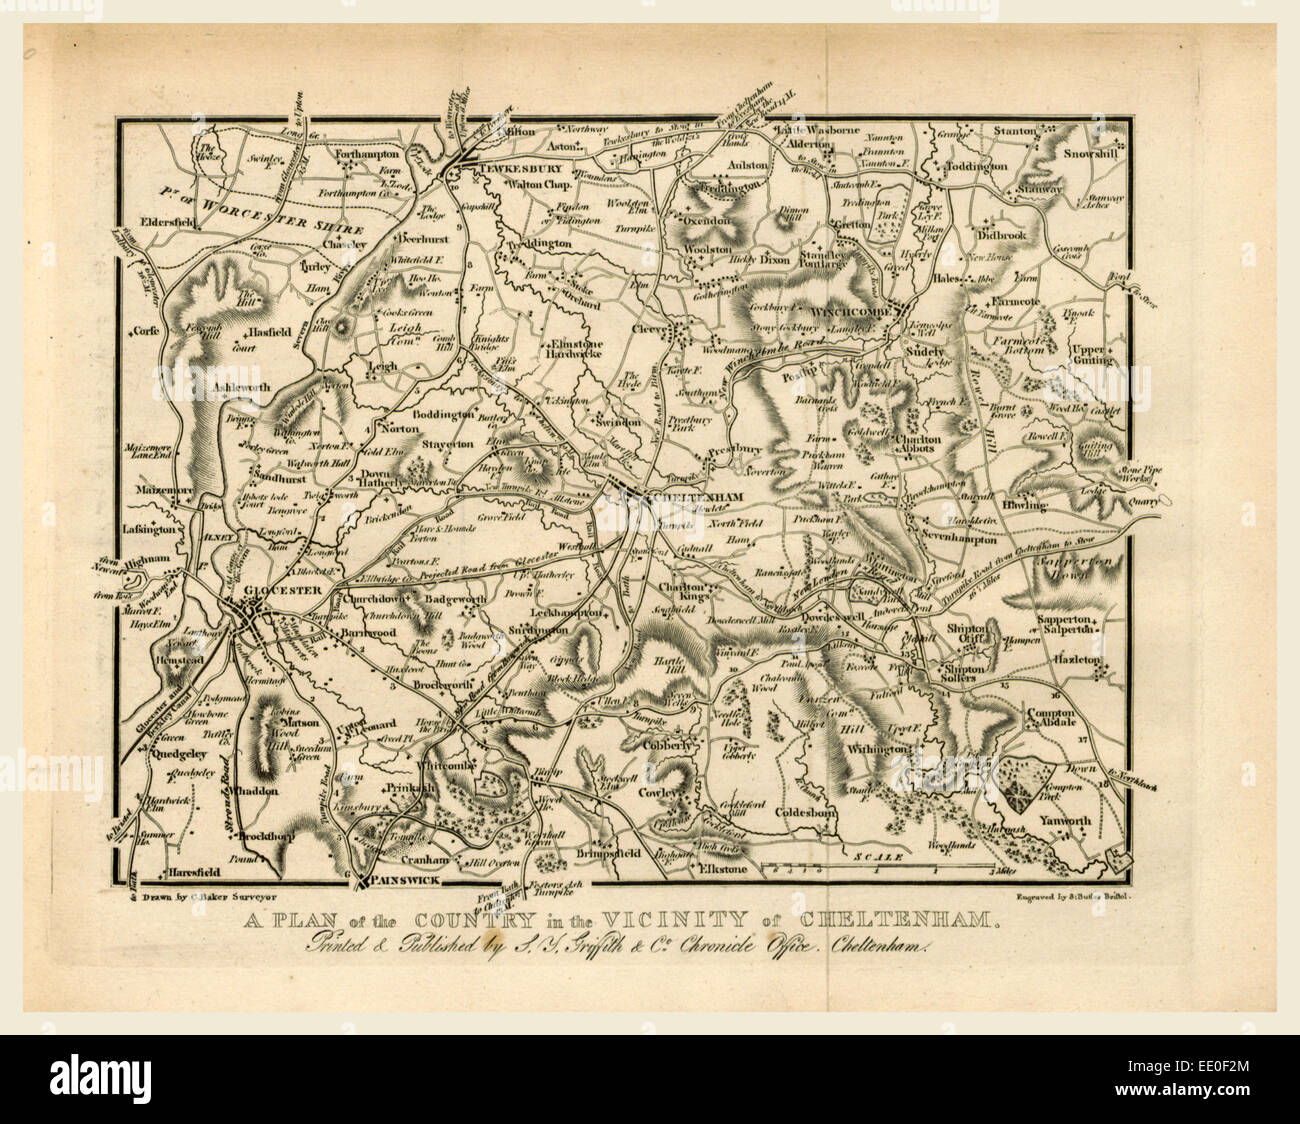 Map, Griffith's new historical description of Cheltenham and its vicinity, 19th century engraving, UK - Stock Image